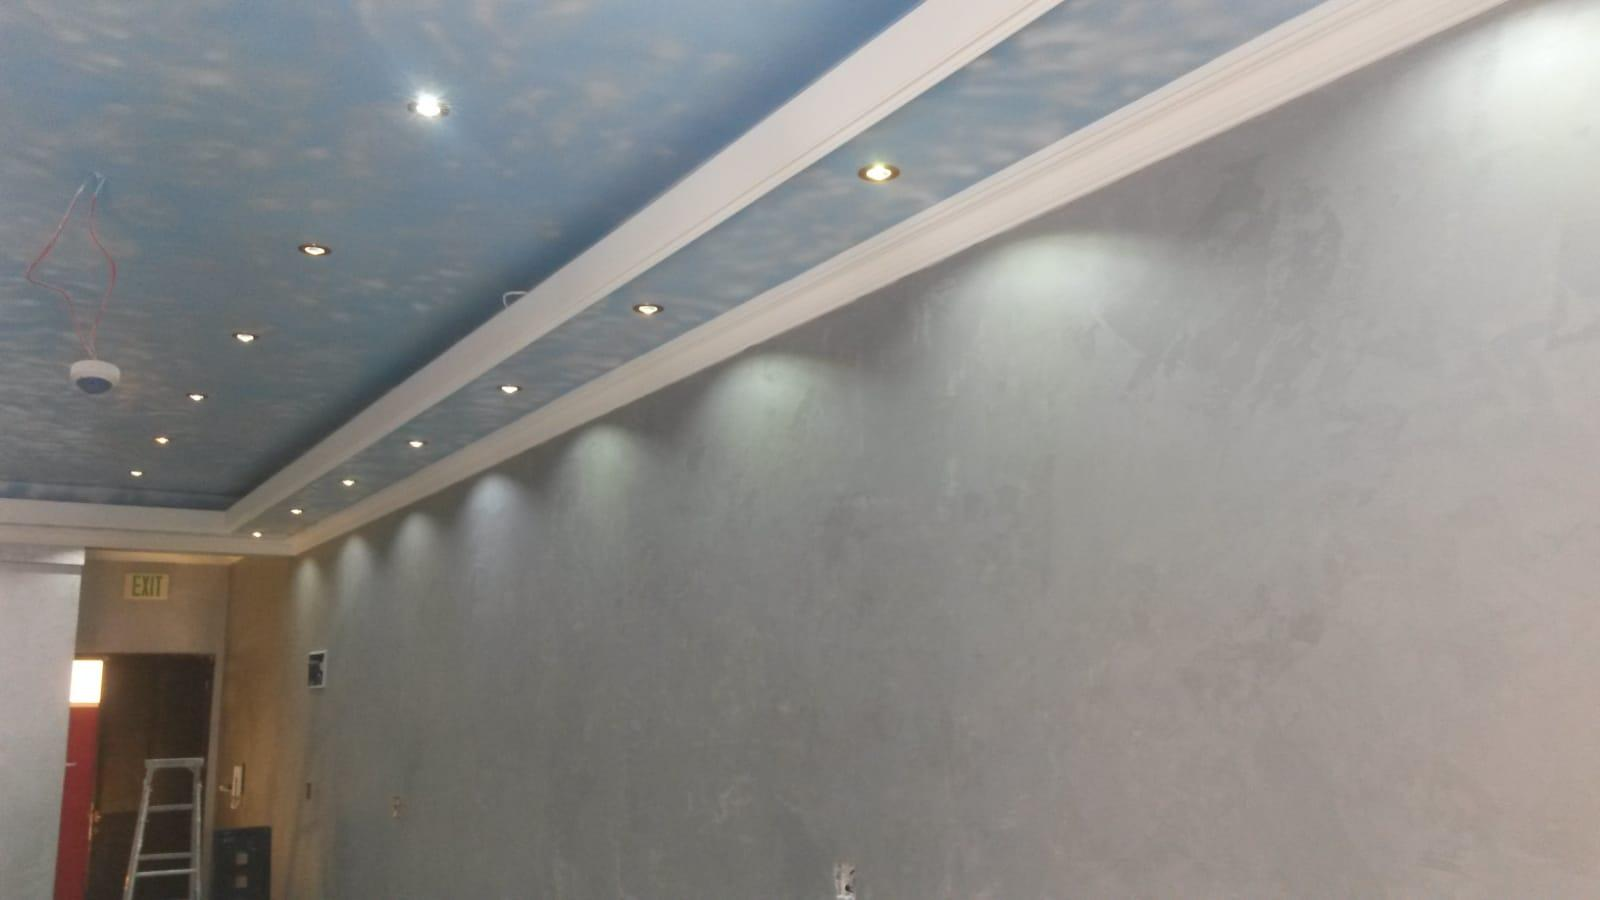 Painting, Gypsum board, Tiles, hadid, waterproofin